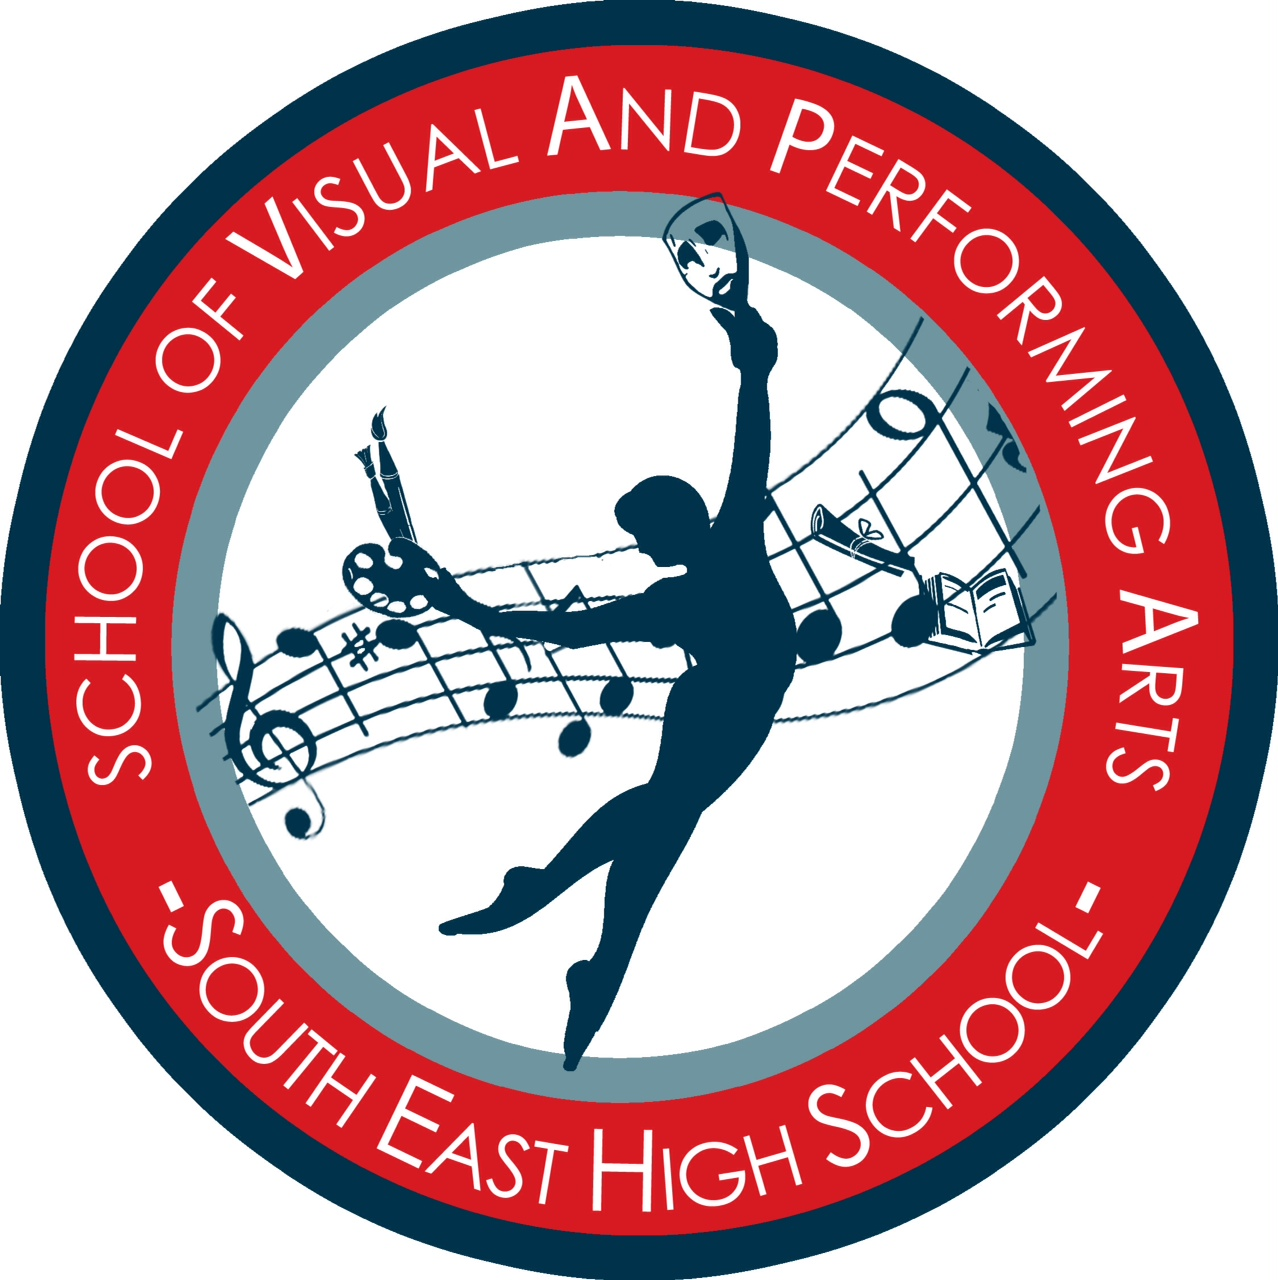 School of Visual and Performing Arts